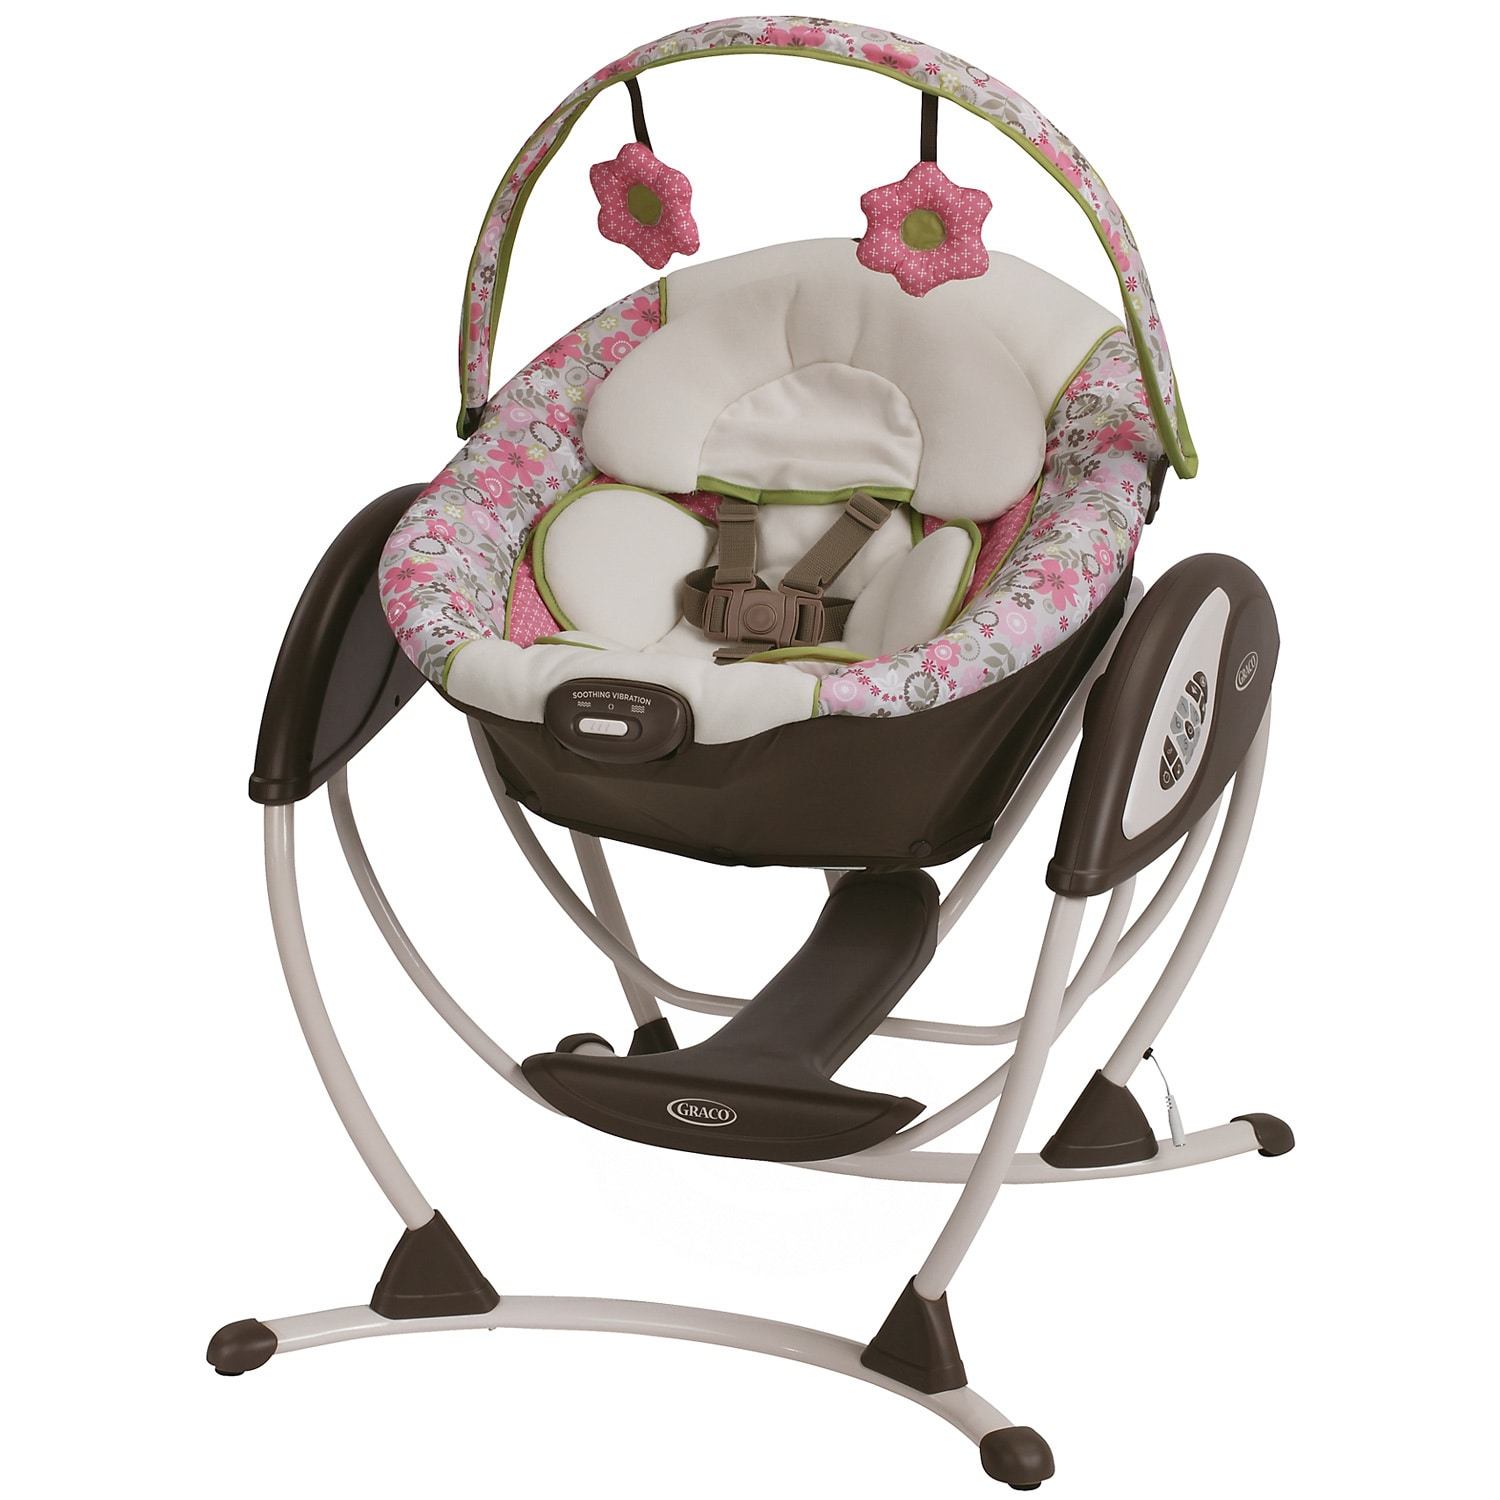 Graco Glider Lx Gliding Swing In Renee Overstock